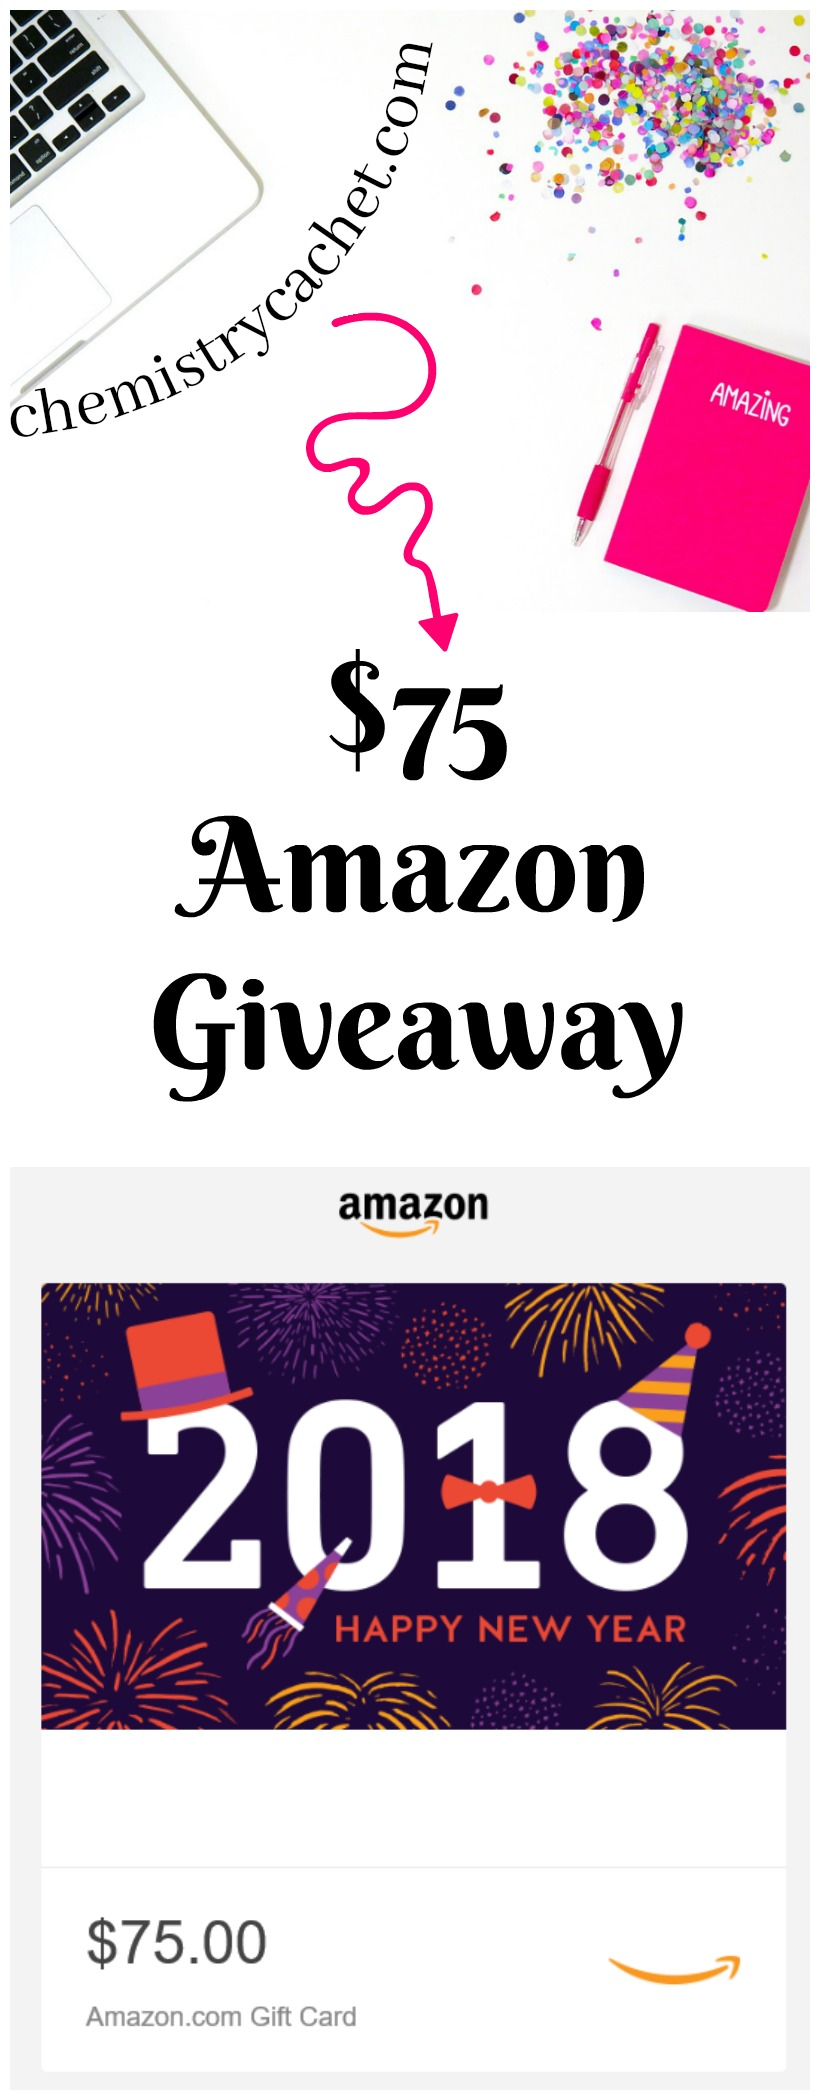 Enter to win a $75 Amazong Giveaway to celebrate the new year on chemistrycachet.com